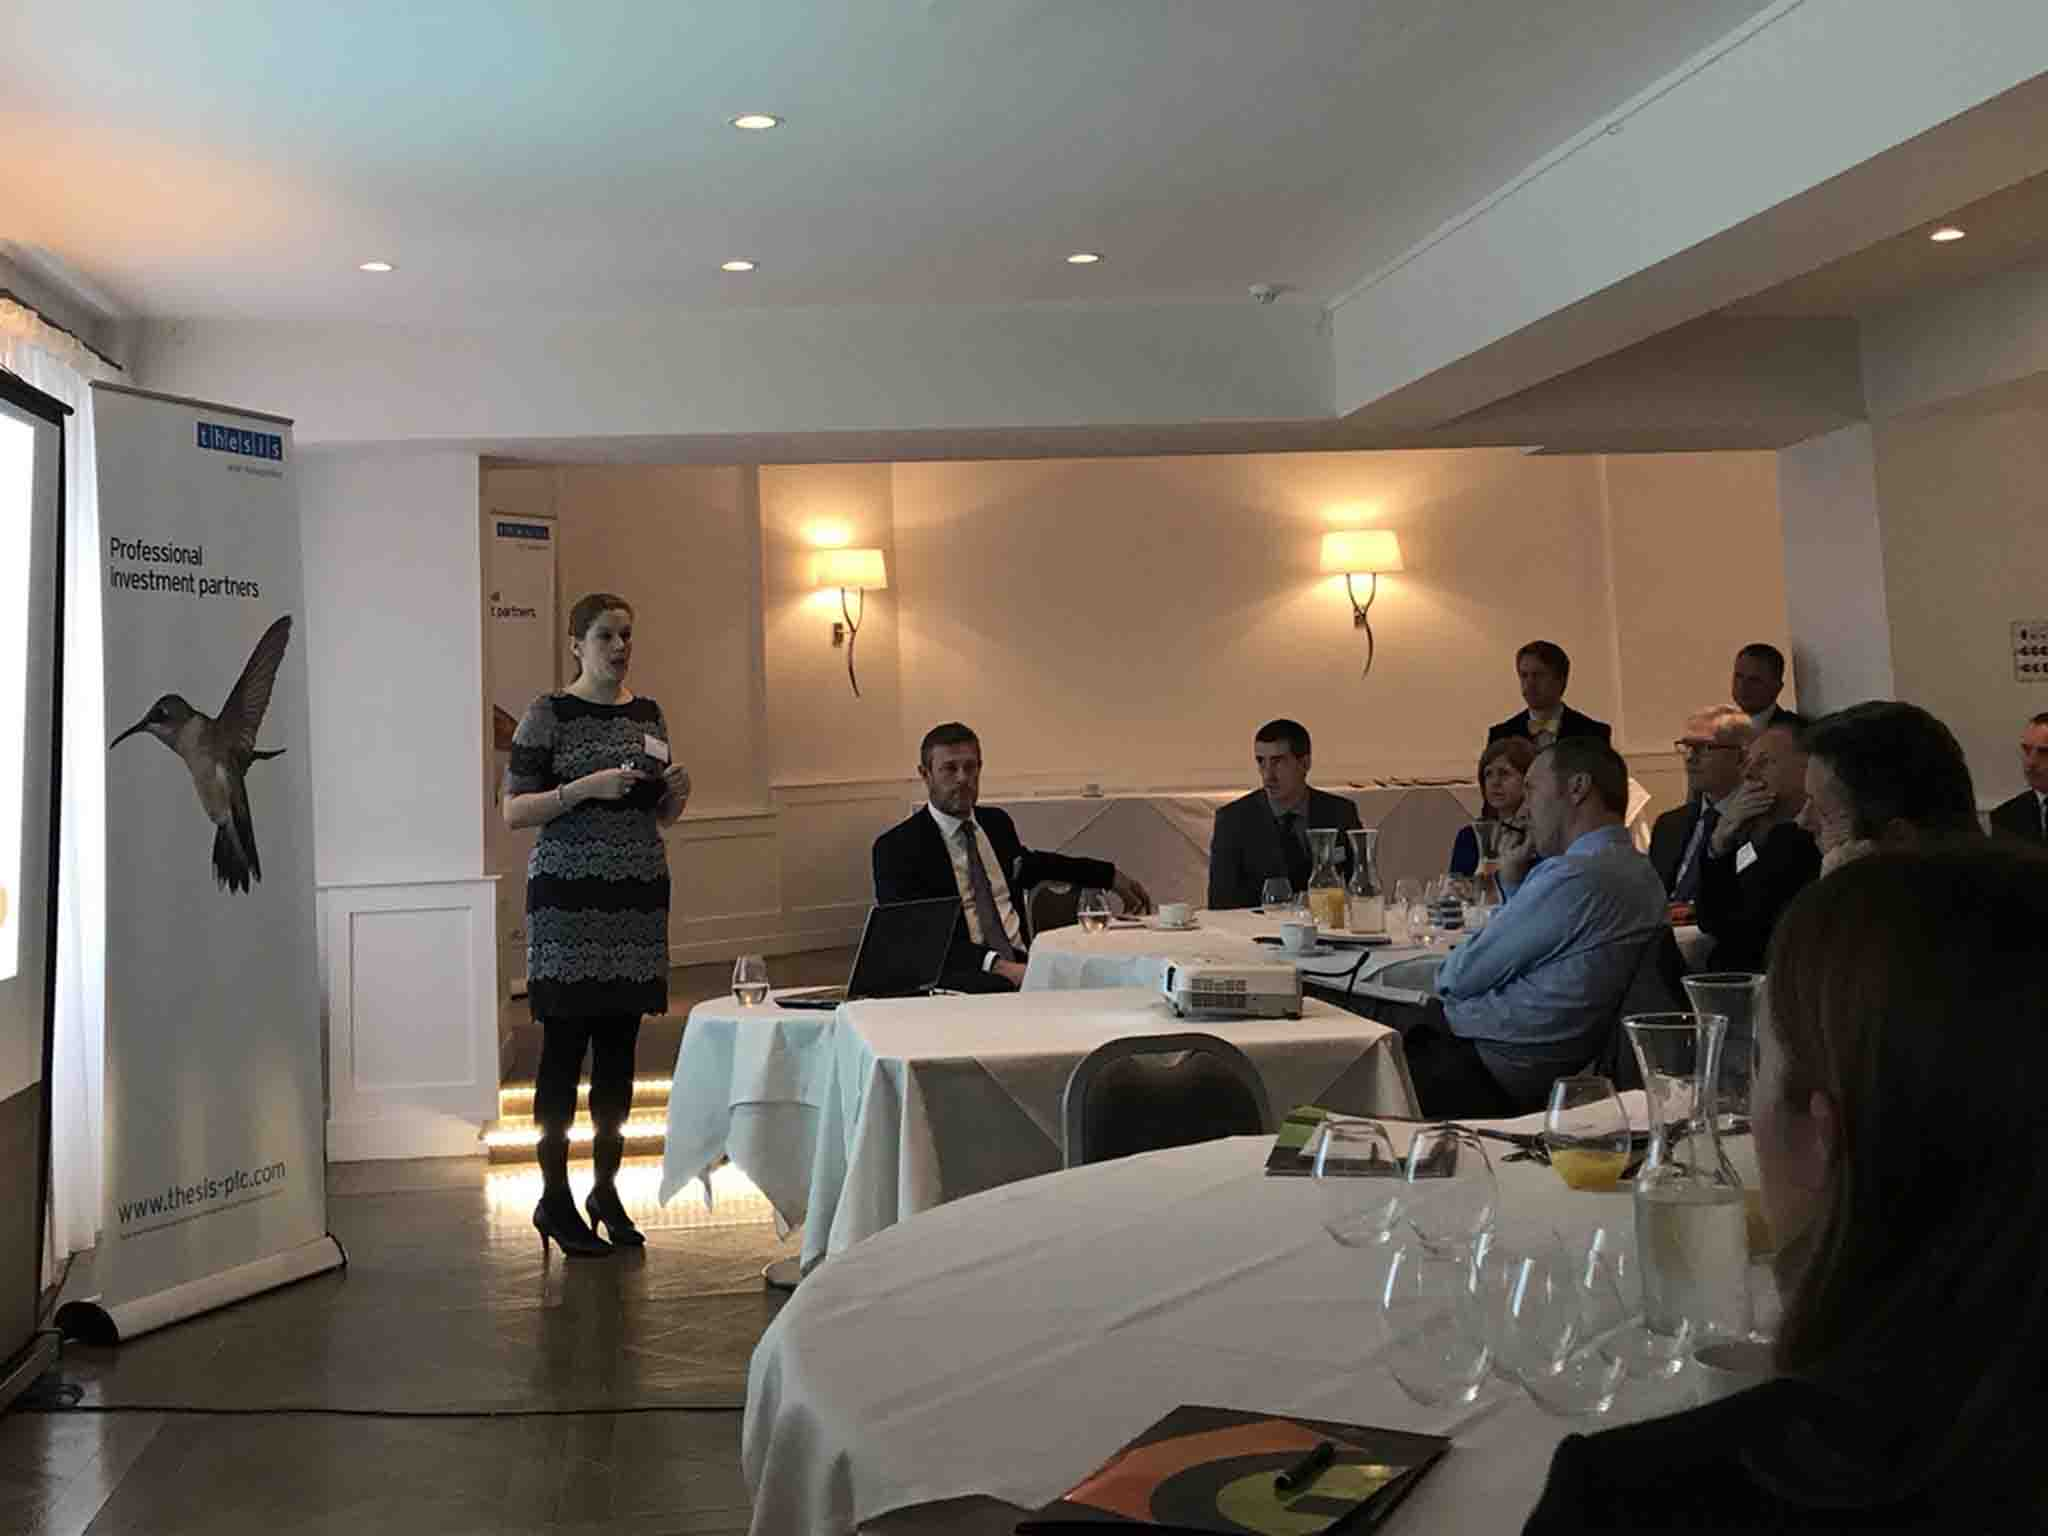 Sonia Green presenting to financial advisors